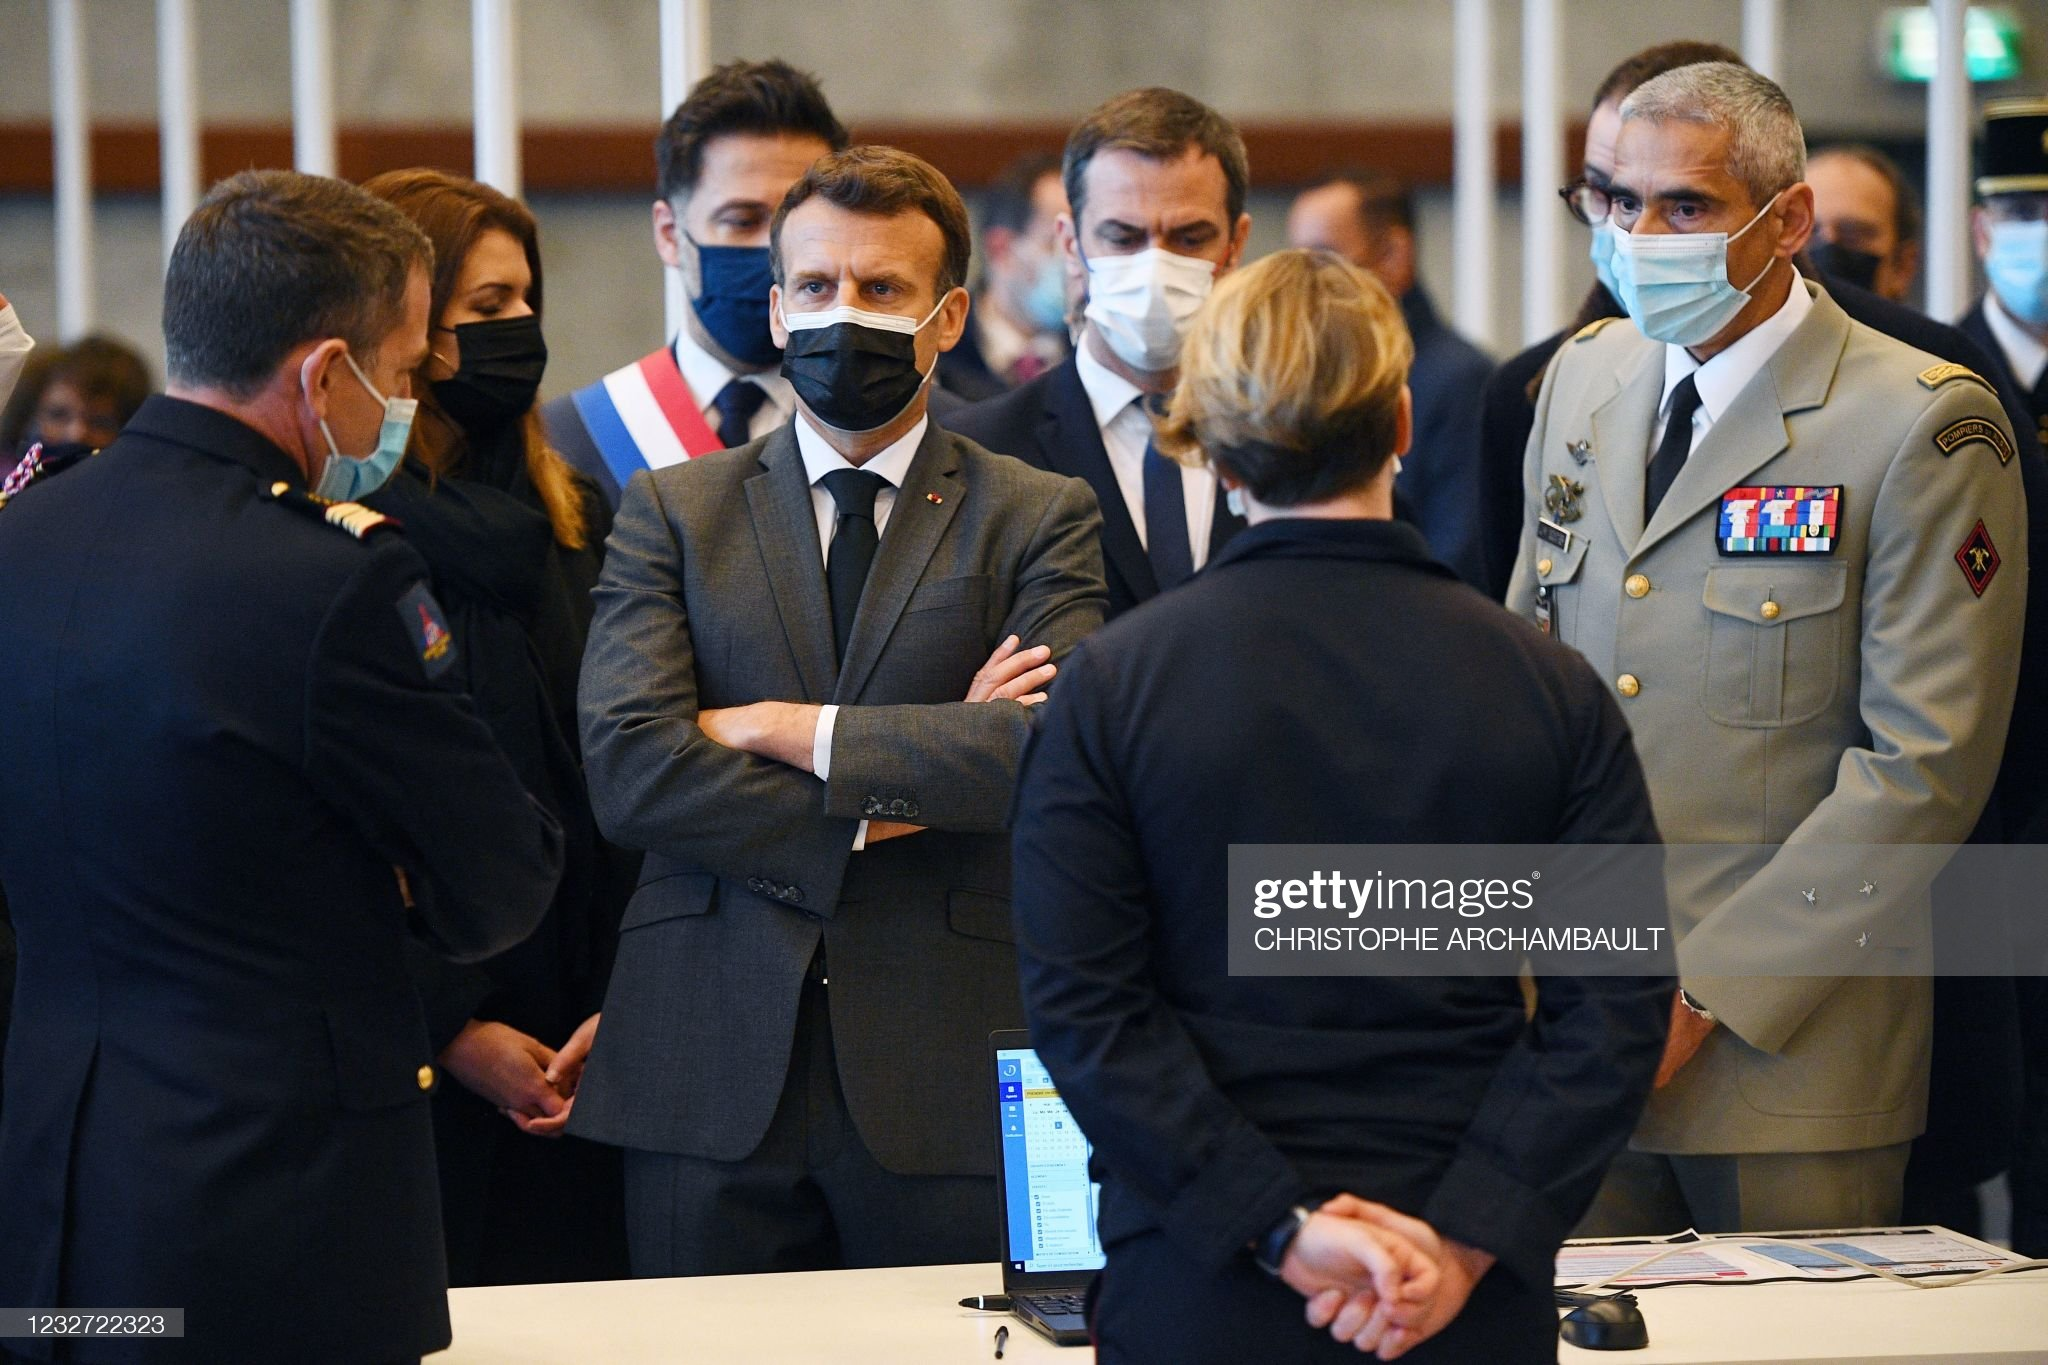 FRANCE-POLITICS-HEALTH-VIRUS : News Photo